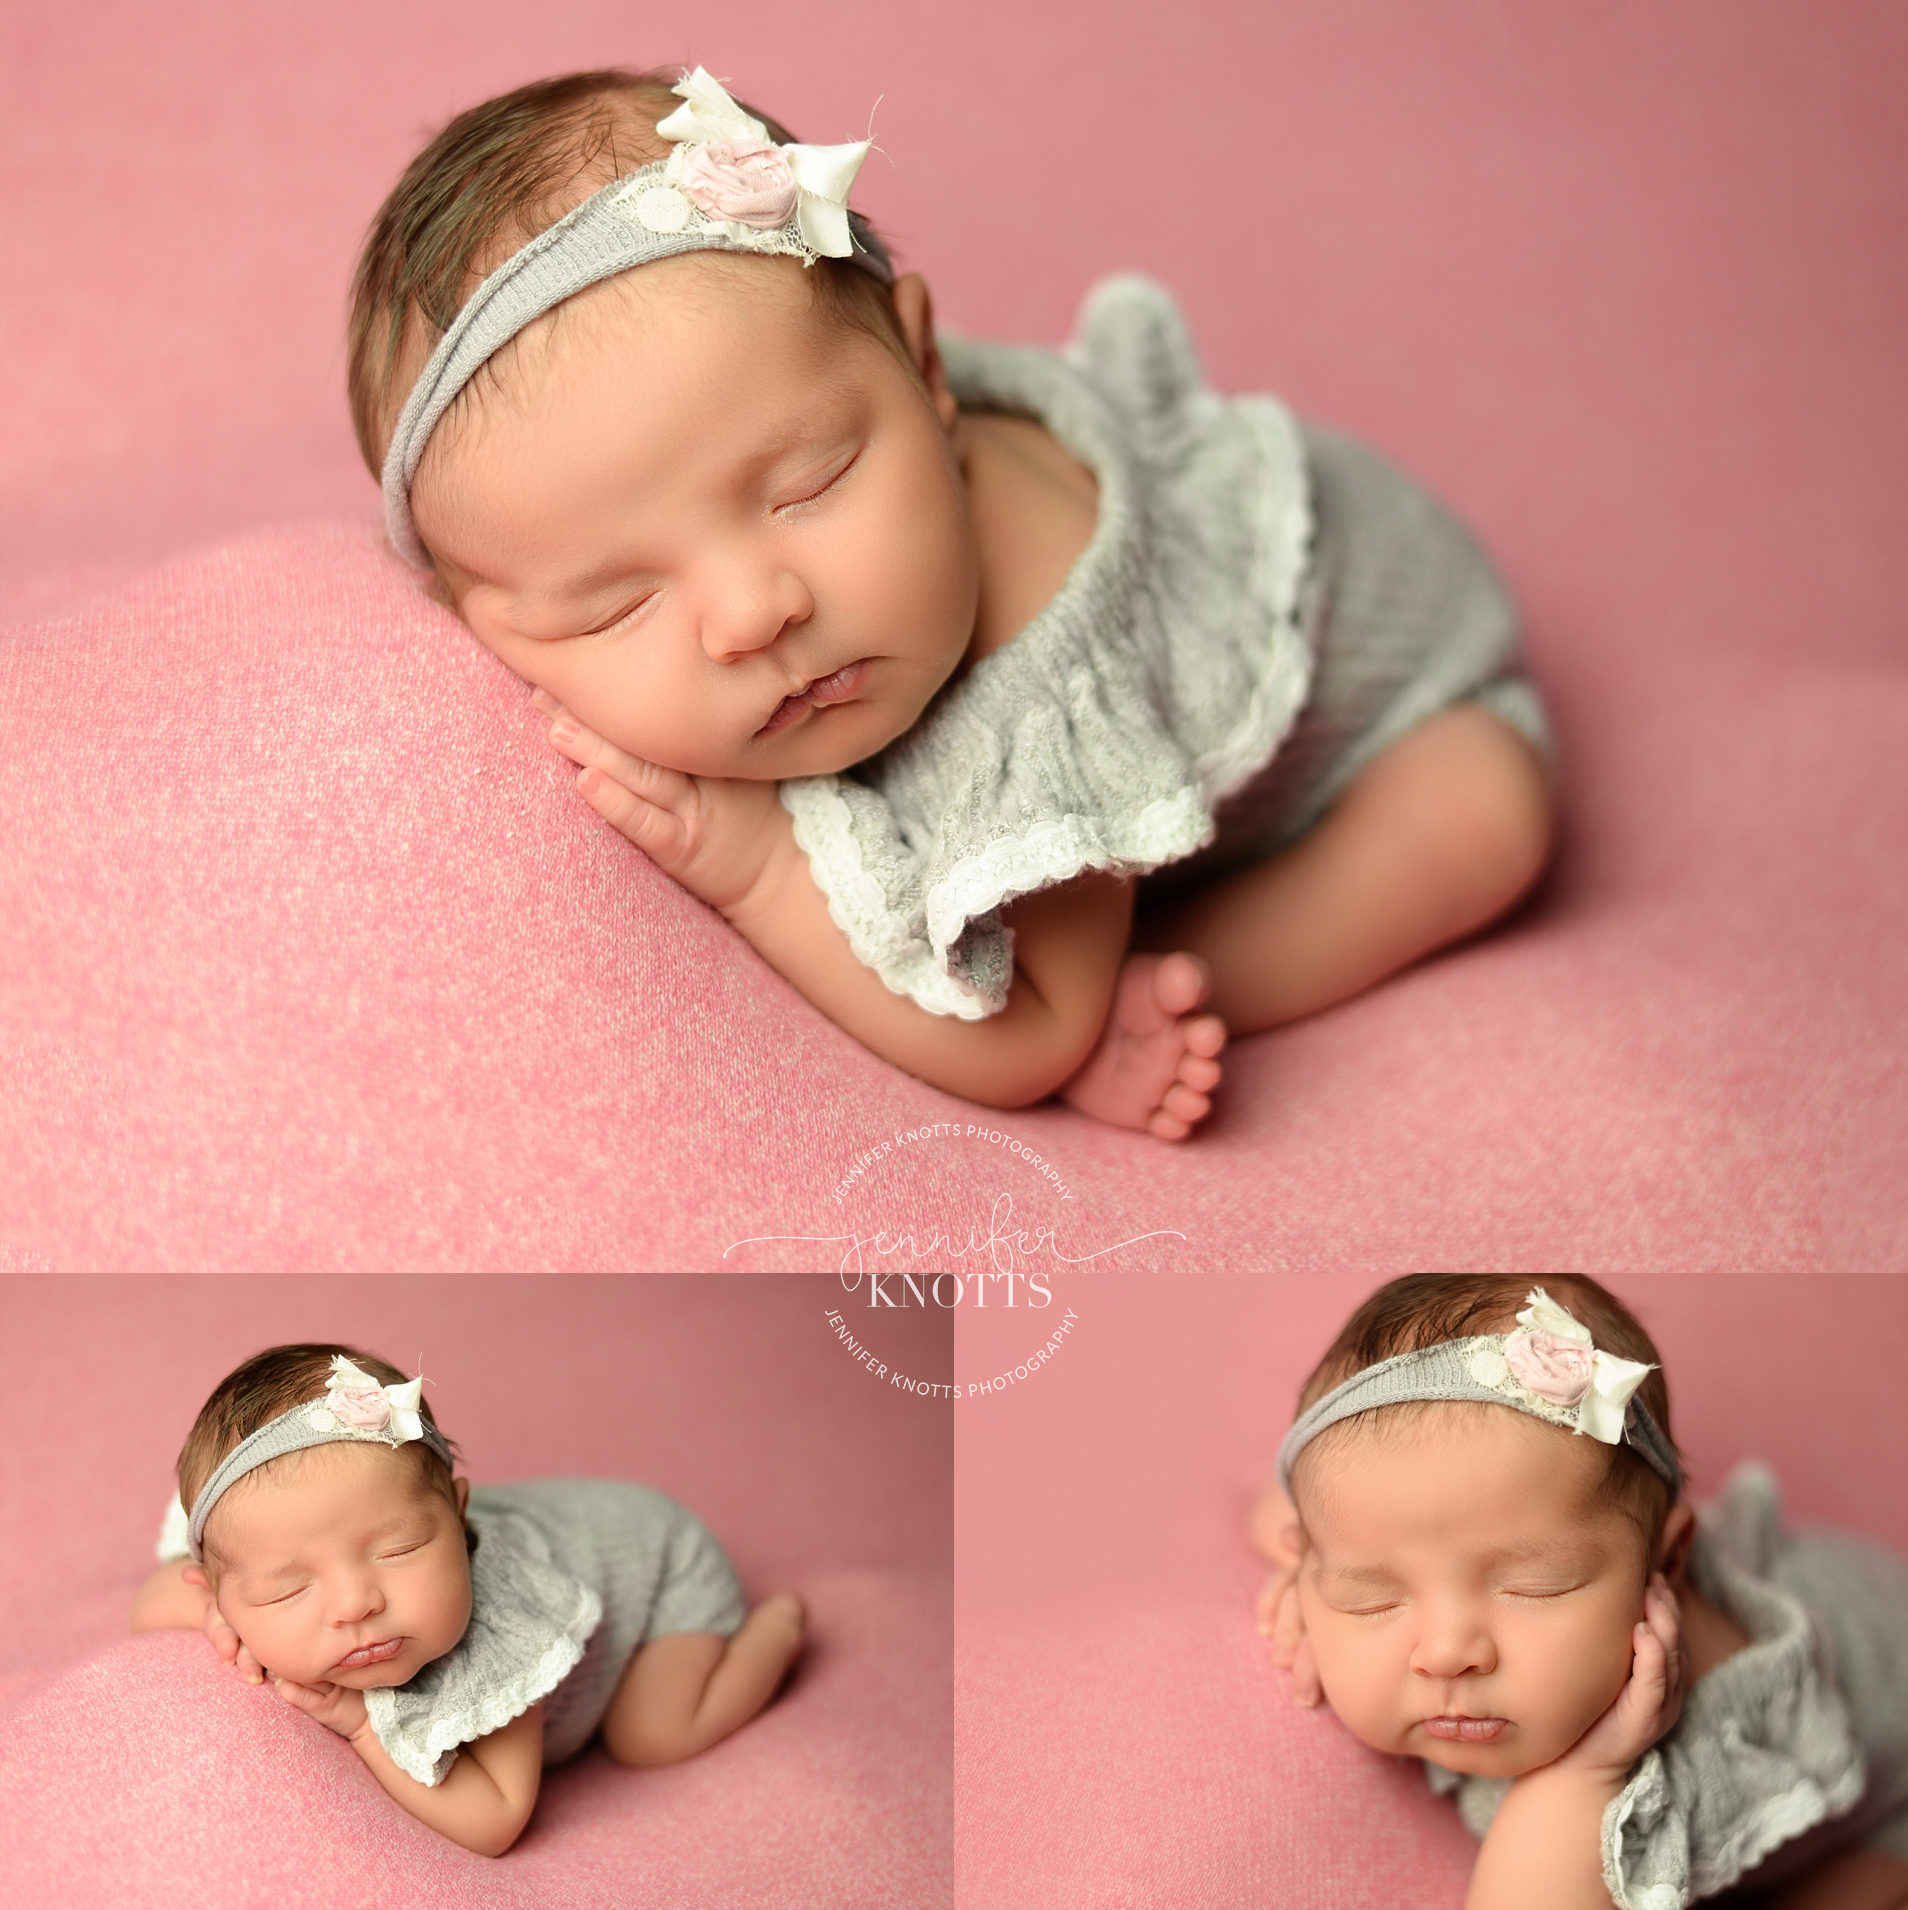 Baby girl poses on pink fabric while wearing gray romper